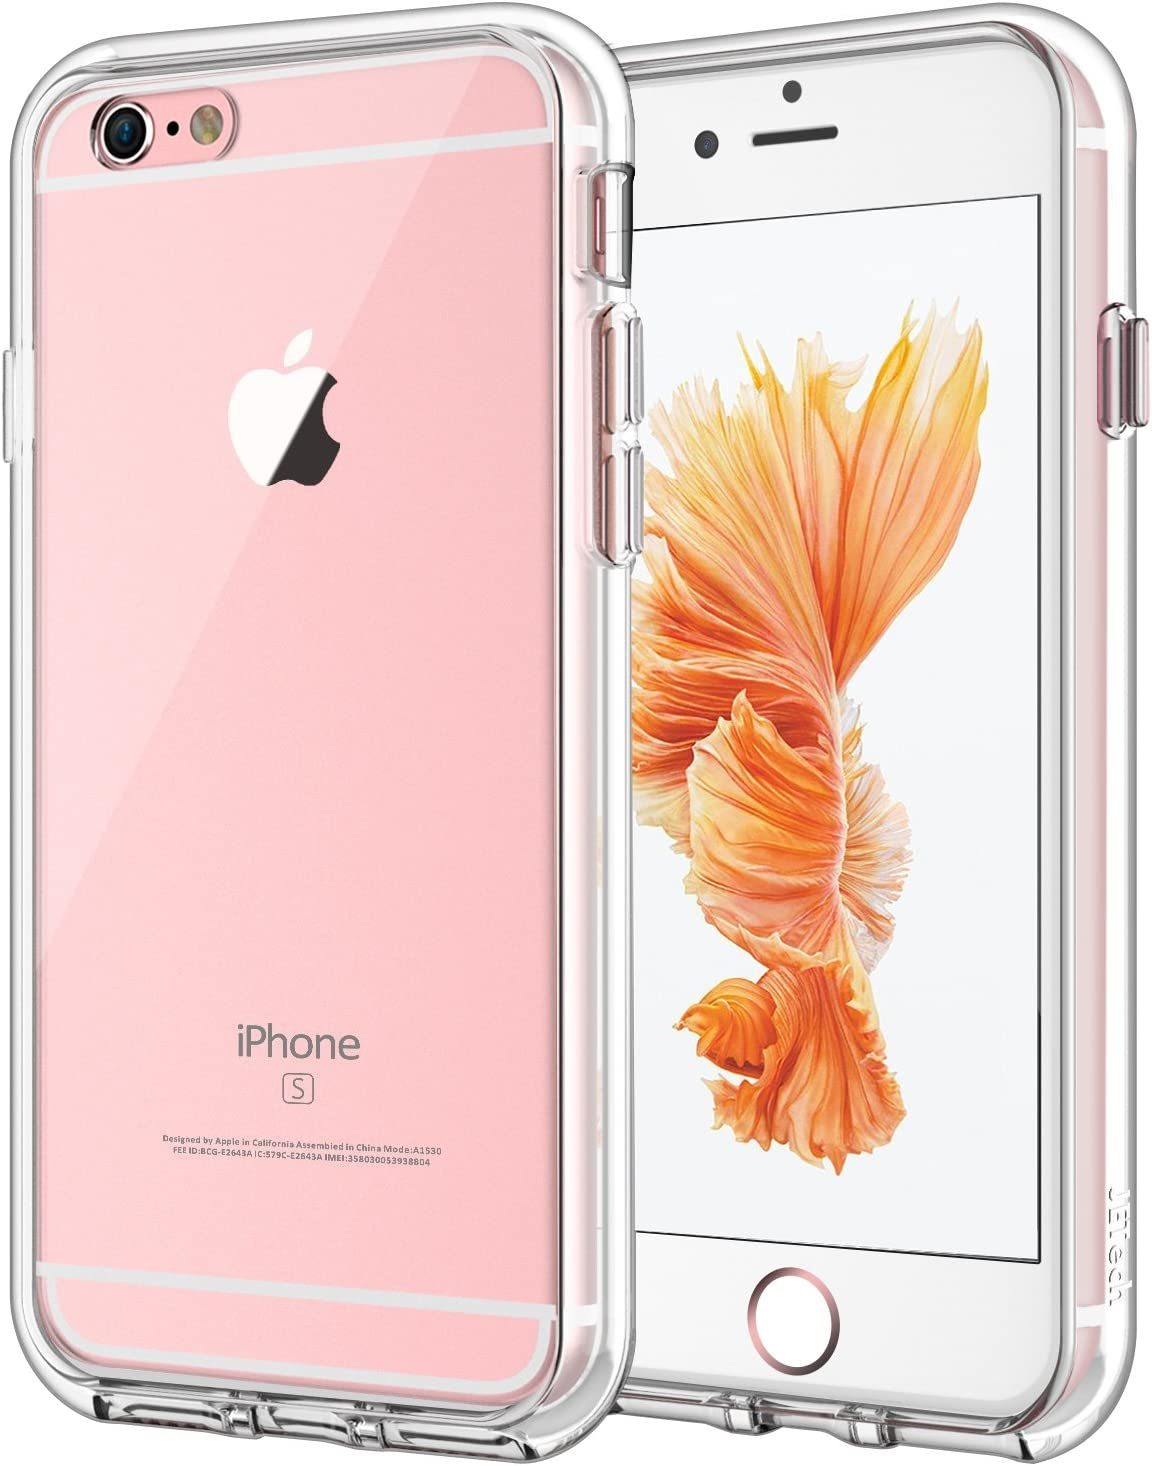 JETech Funda Compatible iPhone 6s y iPhone 6, Carcasa Anti-Choques y Anti-Arañazos, Transparente: Amazon.es: Electrónica